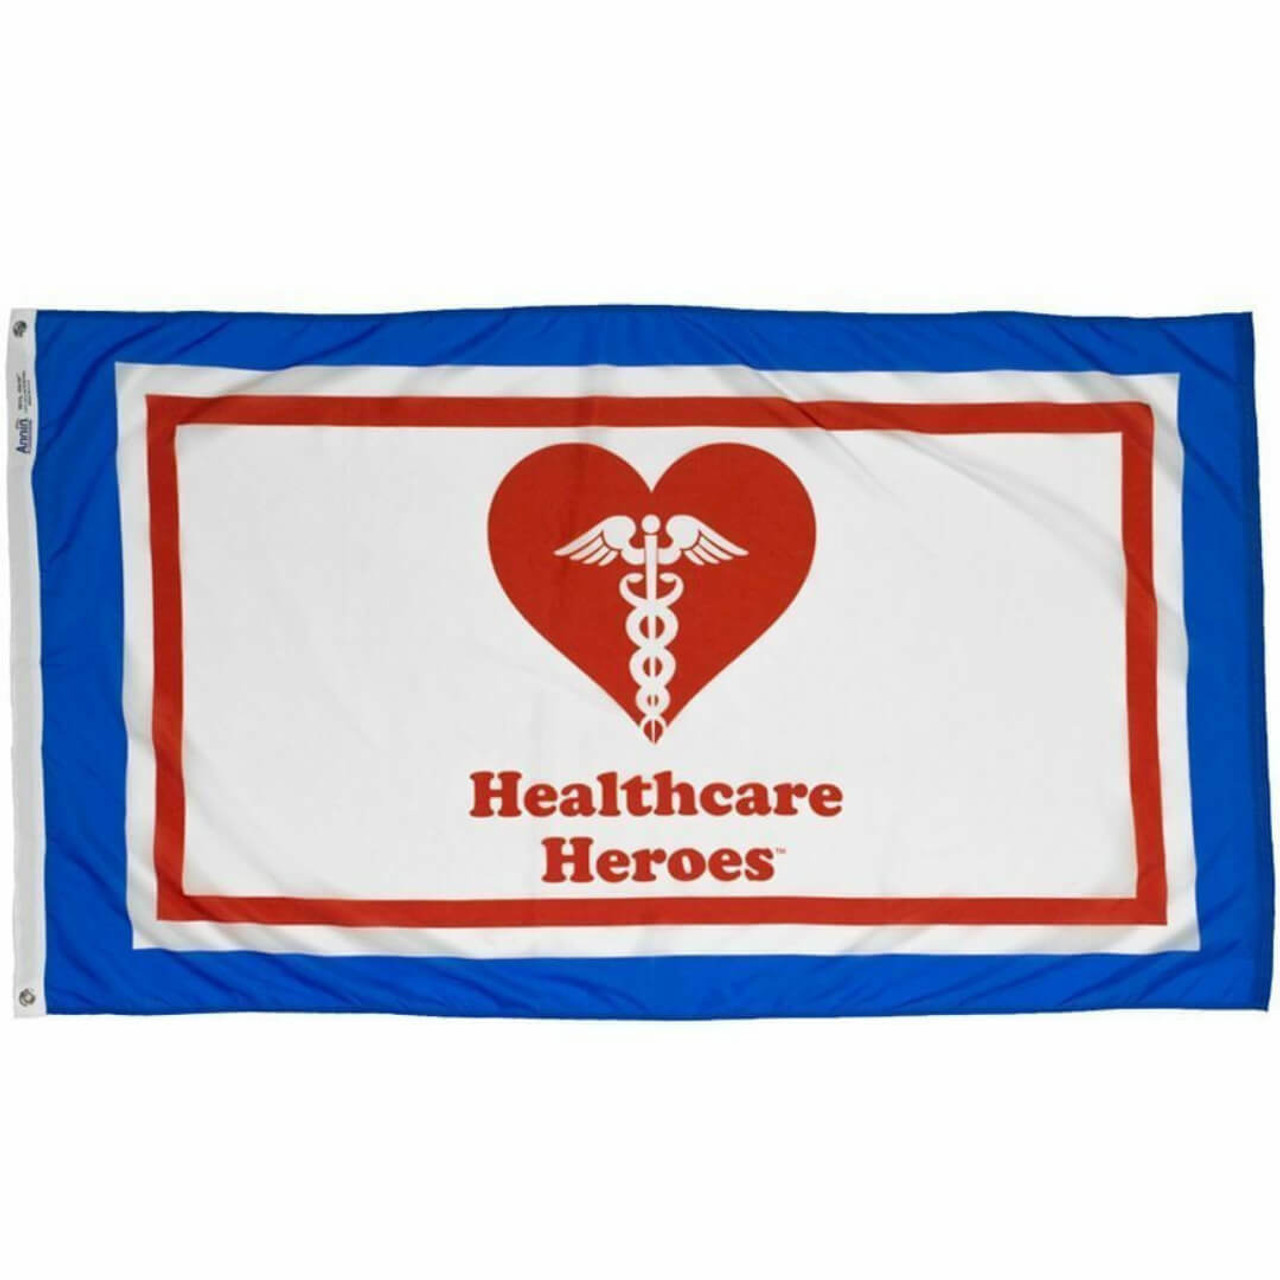 """Our Healthcare Heroes flag features a red heart with a white medical symbol in the center, with red text reading """"Healthcare Heroes."""" This is all shown on a white background within a red border, within a white border, within a blue border."""